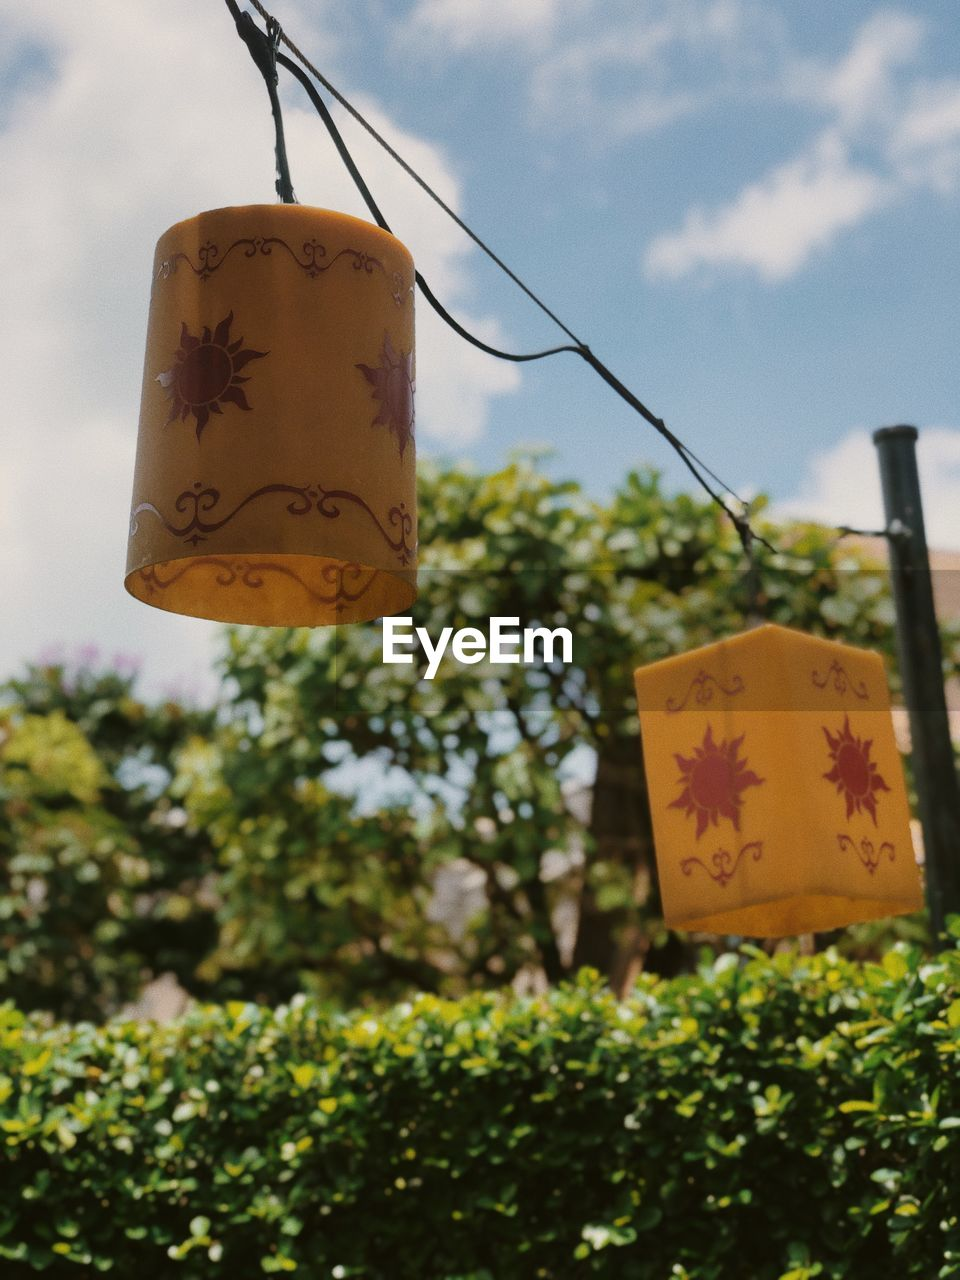 hanging, plant, text, communication, focus on foreground, nature, day, script, yellow, tree, no people, non-western script, close-up, outdoors, selective focus, string, low angle view, label